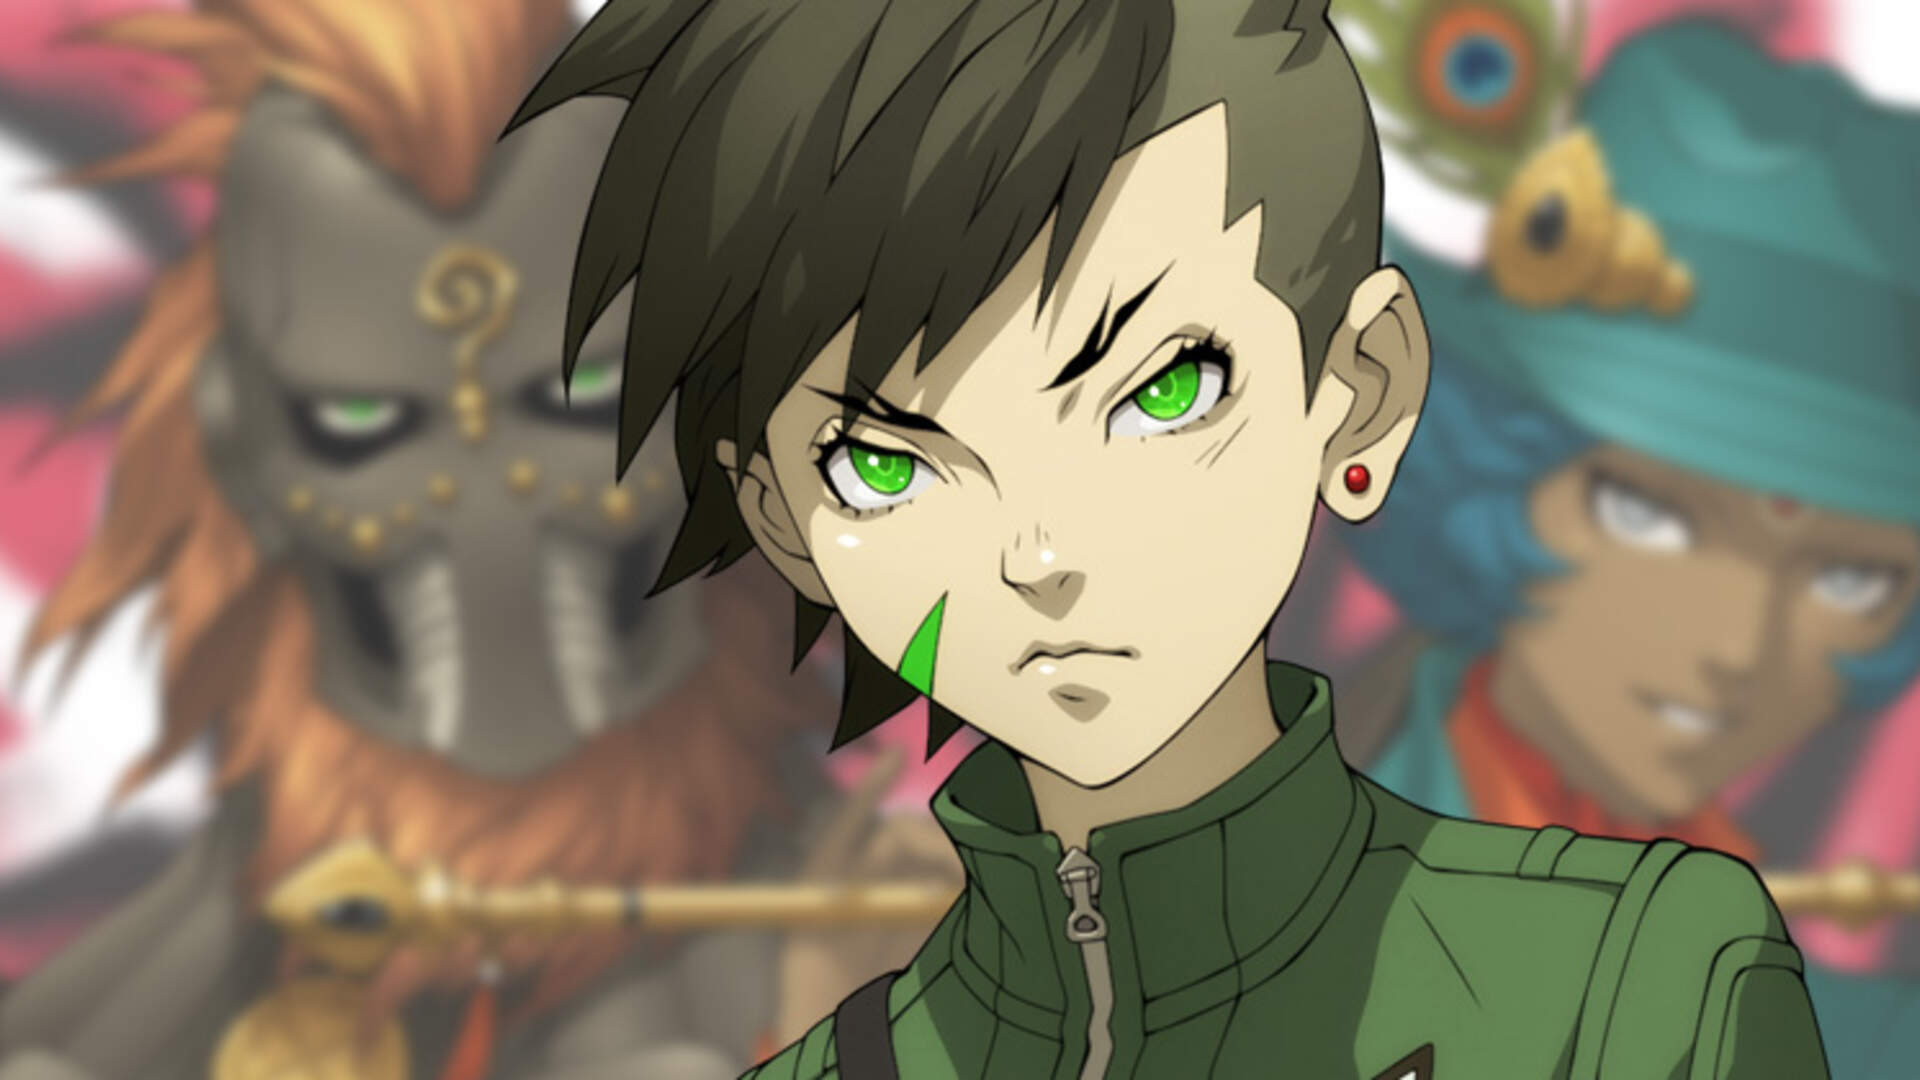 Shin Megami Tensei IV: Apocalypse 3DS Review — End of Days